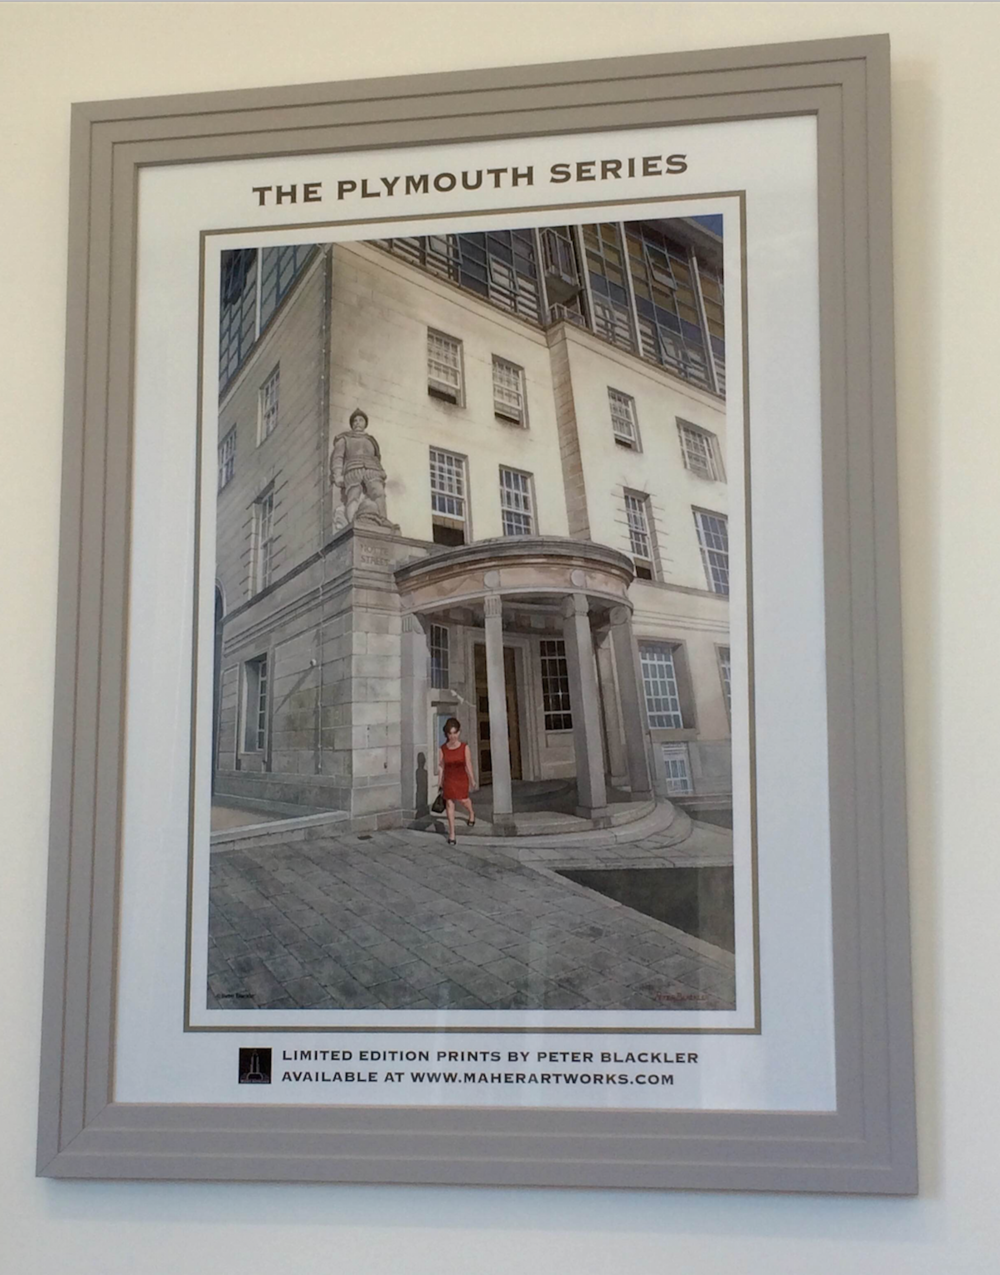 THE PLYMOUTH SERIES POSTER AT RWY